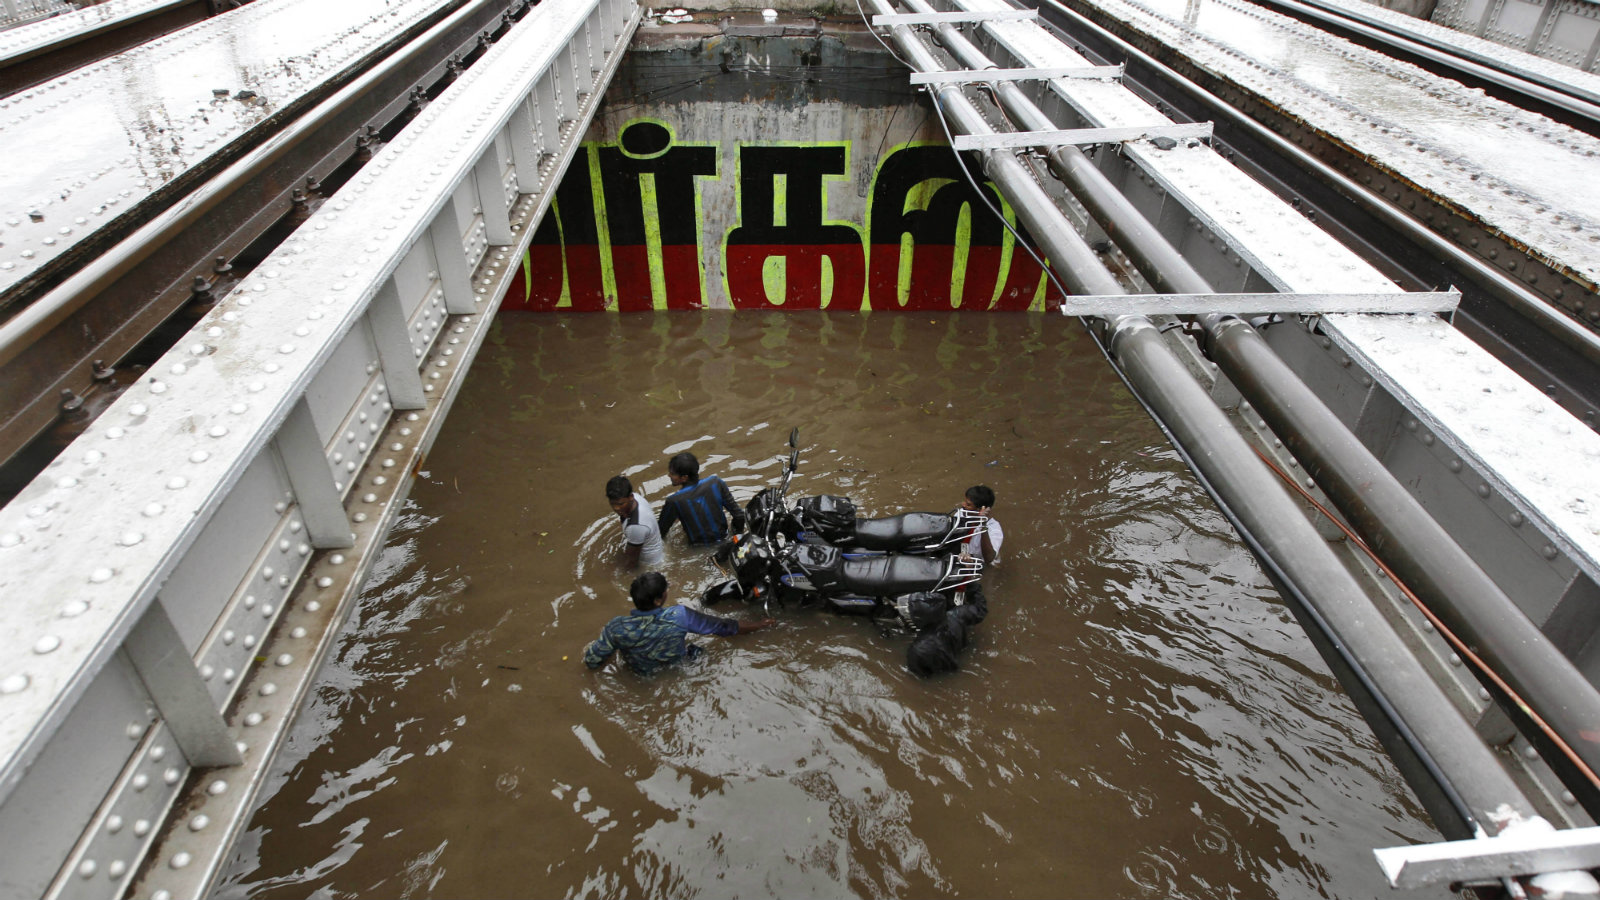 Indian commuters carry their motorbikes on a submerged cart as they wade through a waterlogged subway in Chennai, India, Monday, Nov. 9, 2015. Heavy rains continue to lash several parts of the city after the India Meteorological Department alerted a cyclone warning on the Bay of Bengal coast likely to make landfall between Chennai and Puducherry on Monday evening, according to local reports.